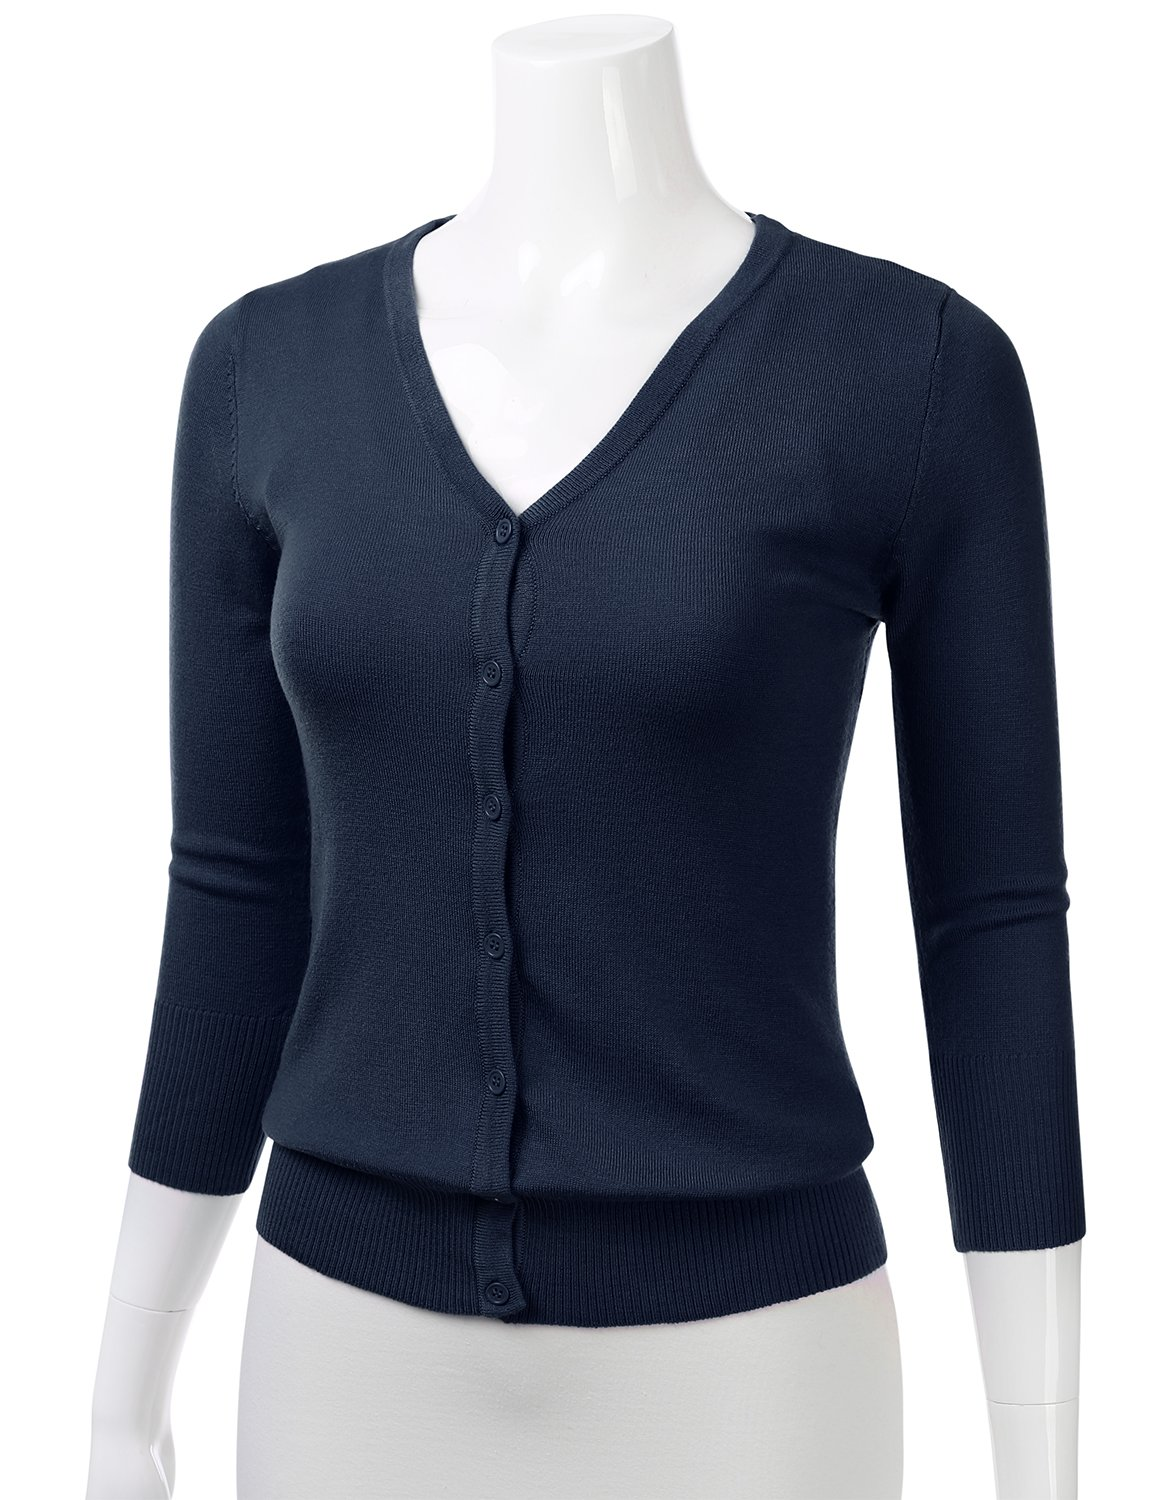 FLORIA Womens Button Down 3/4 Sleeve V-Neck Stretch Knit Cardigan Sweater Navy M by FLORIA (Image #2)